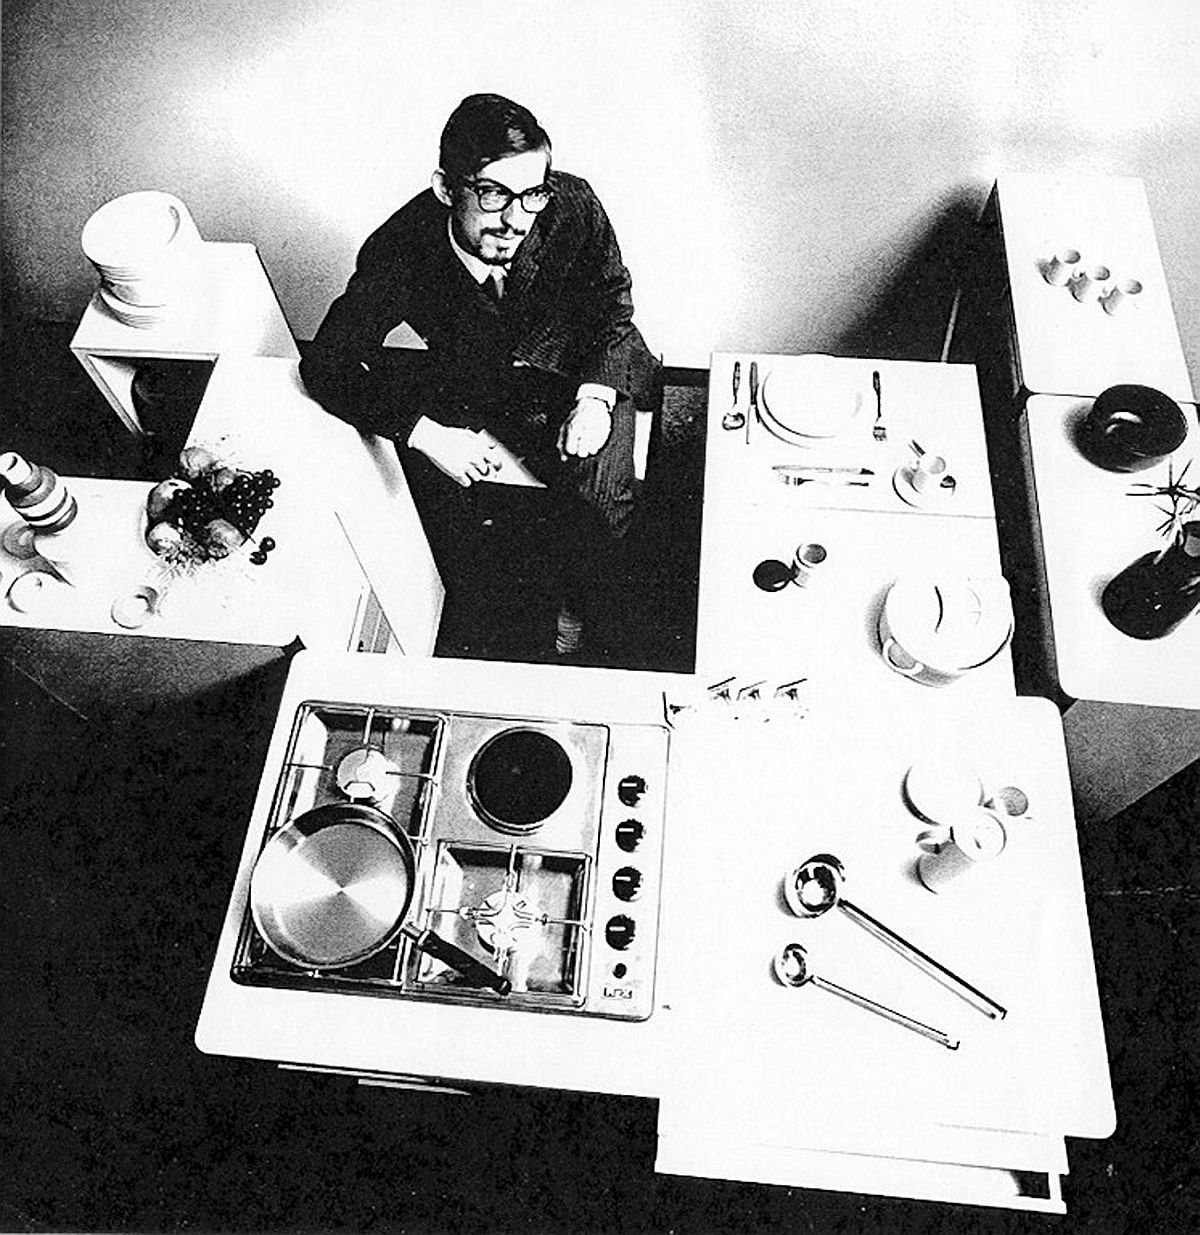 Virgilio Forchiassin at work as he creates the trendsetting Spazio Vivo